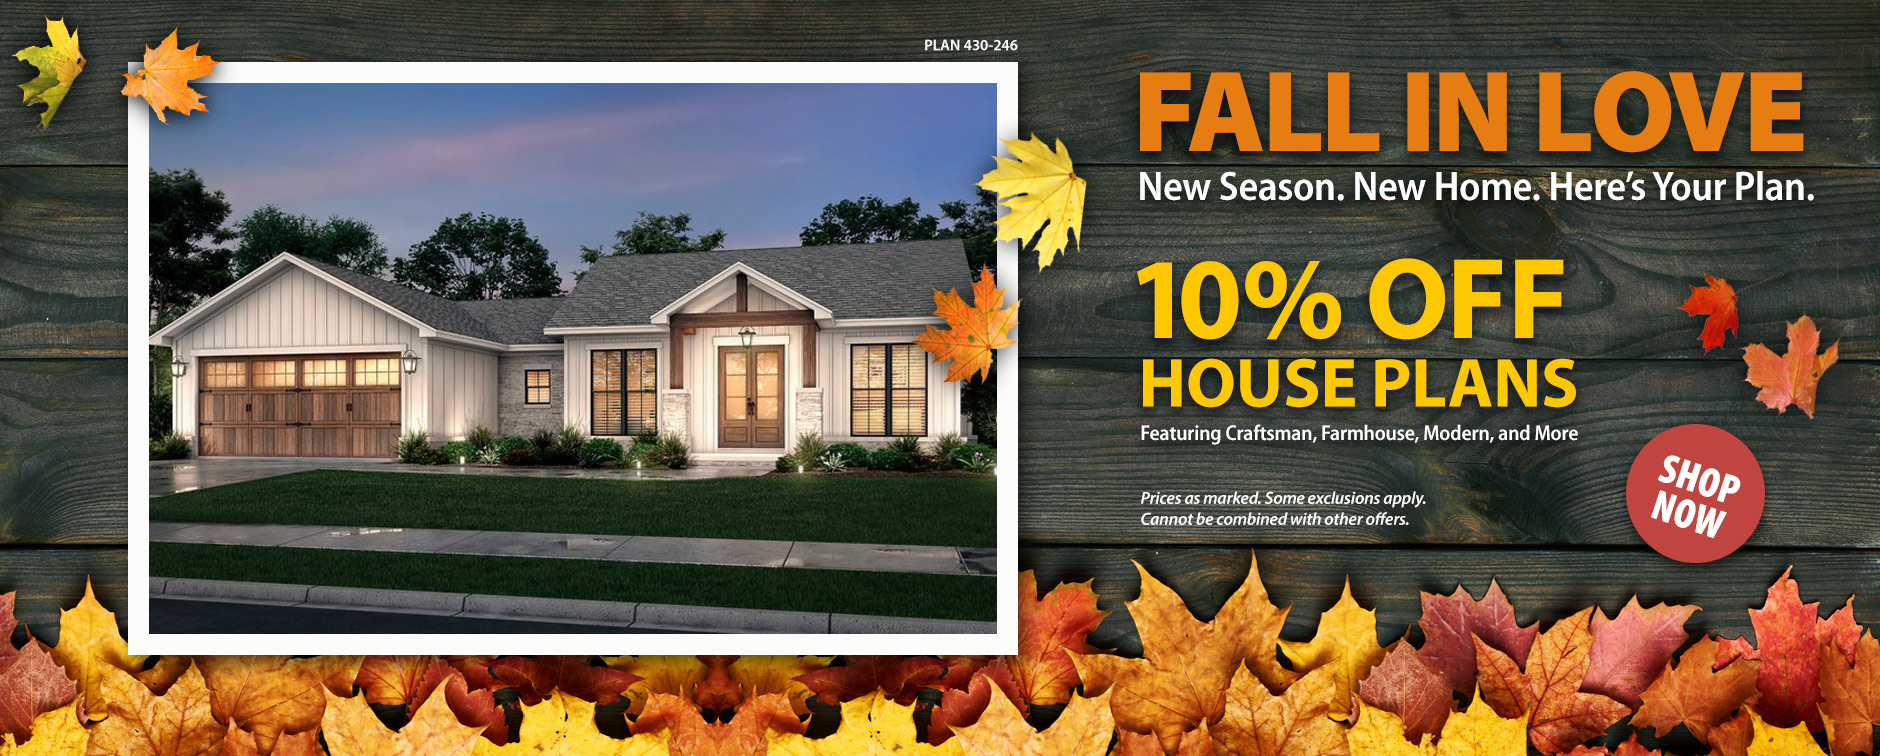 House Plan Sale 10% Off Layouts